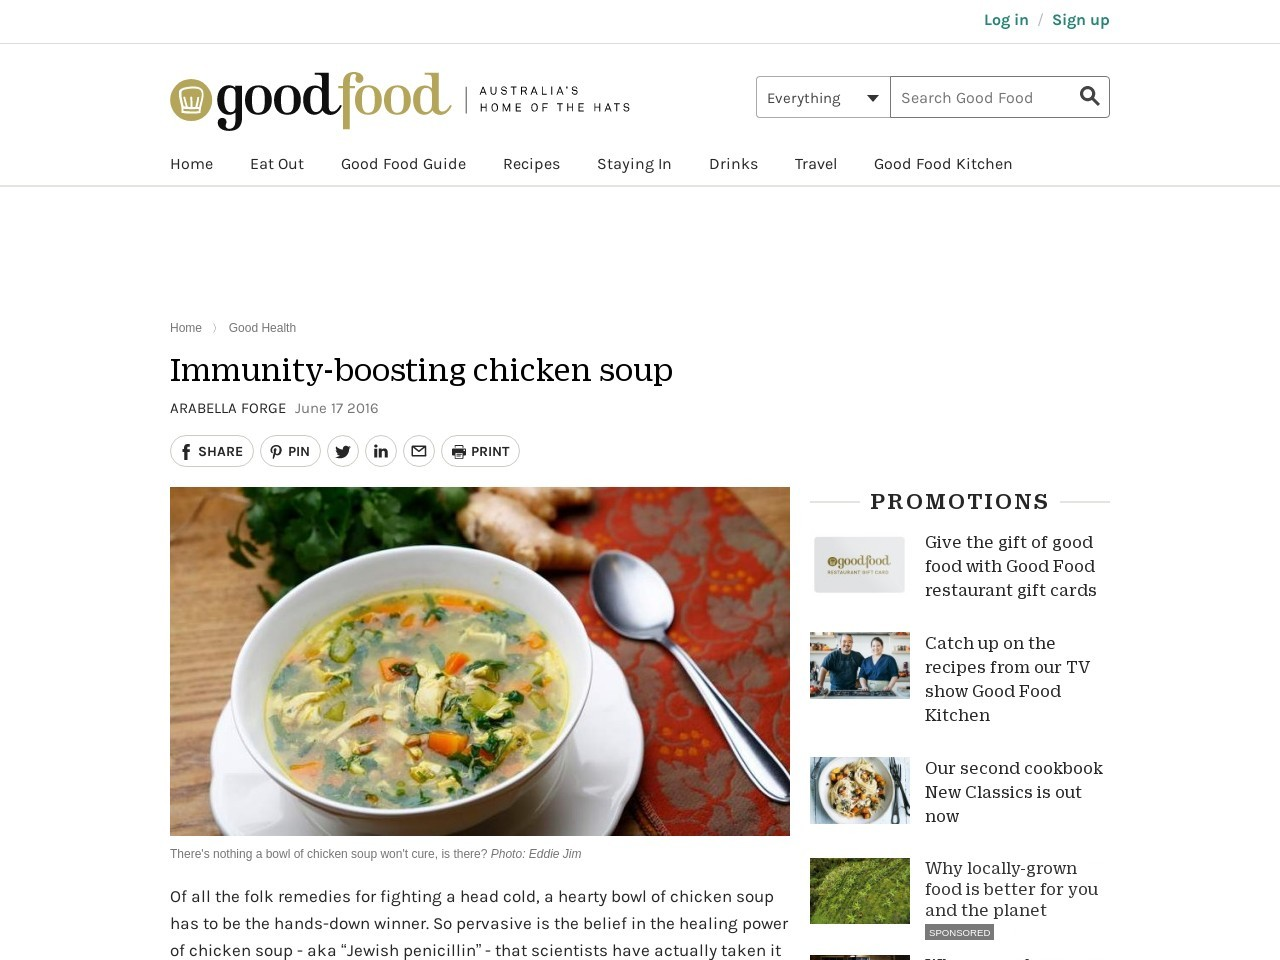 Immunity boost your chicken soup